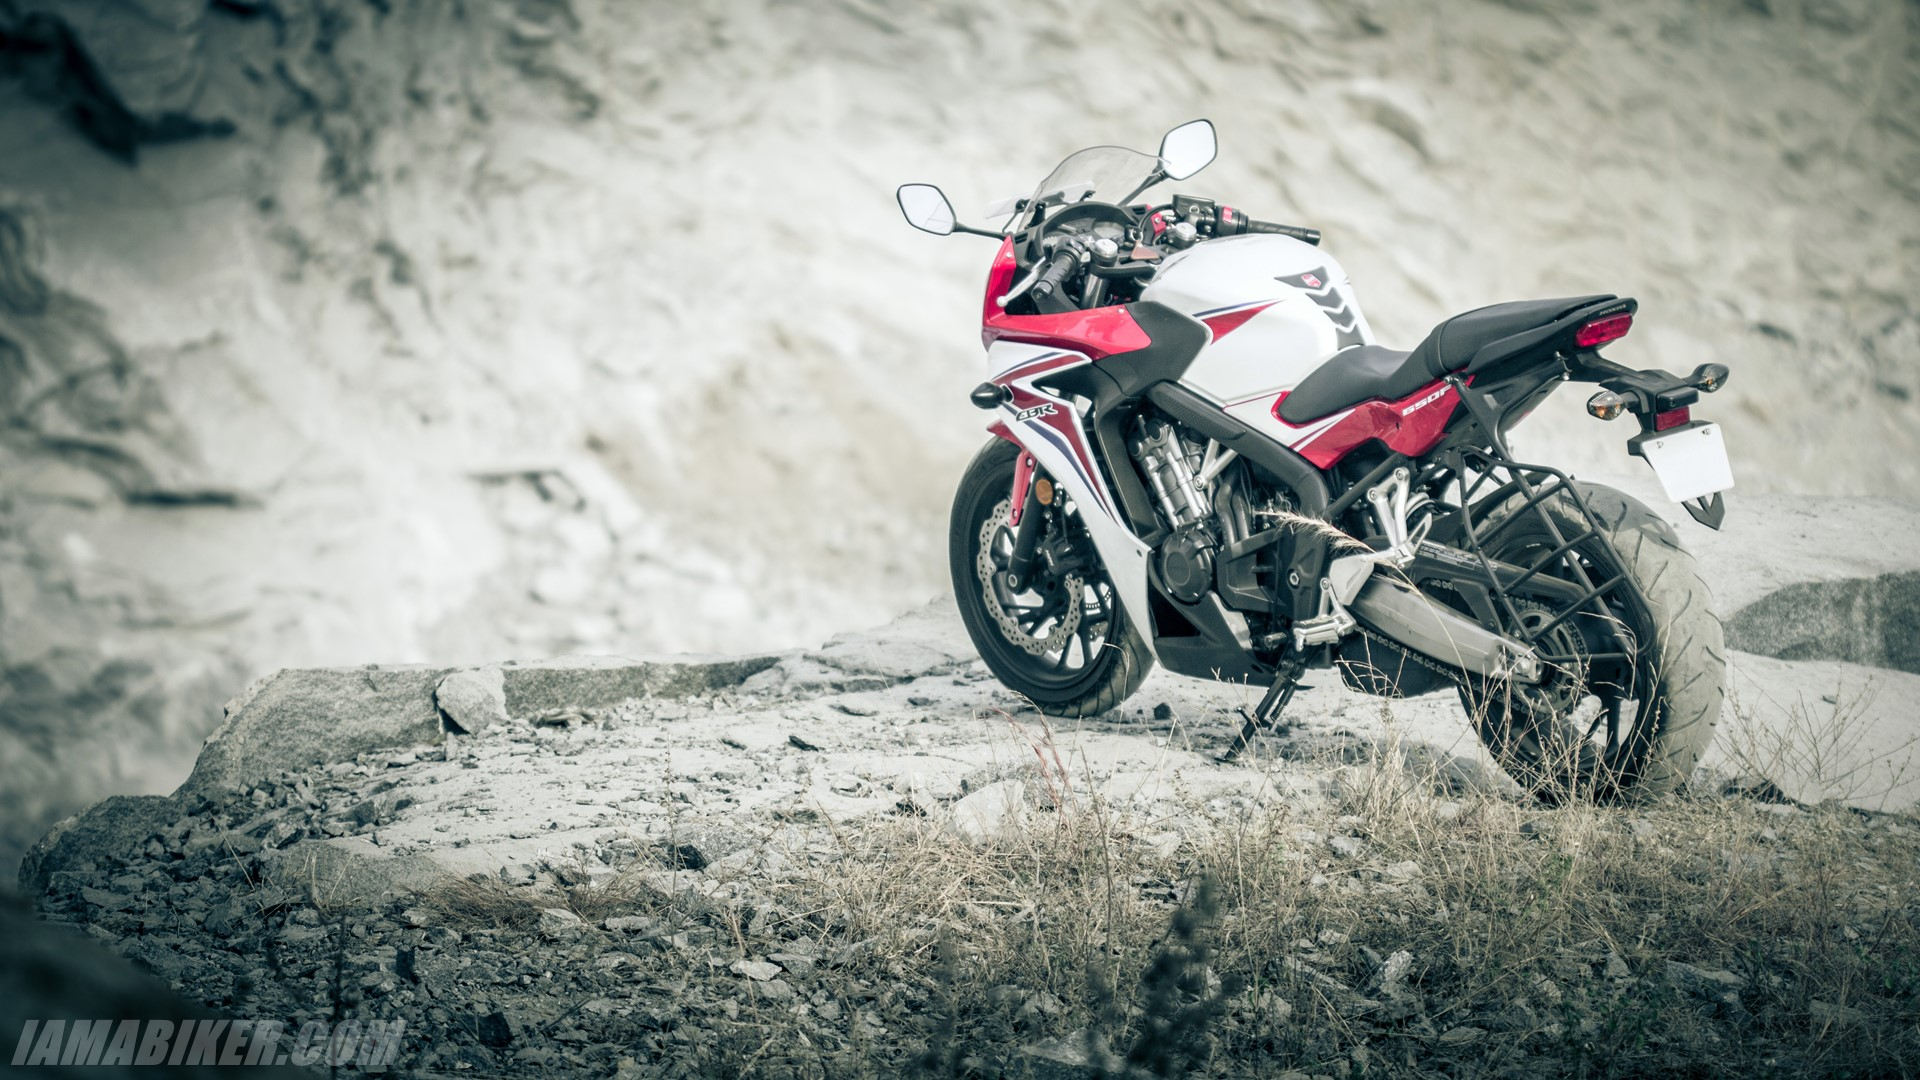 Honda CBR650F HD wallpapers | IAMABIKER